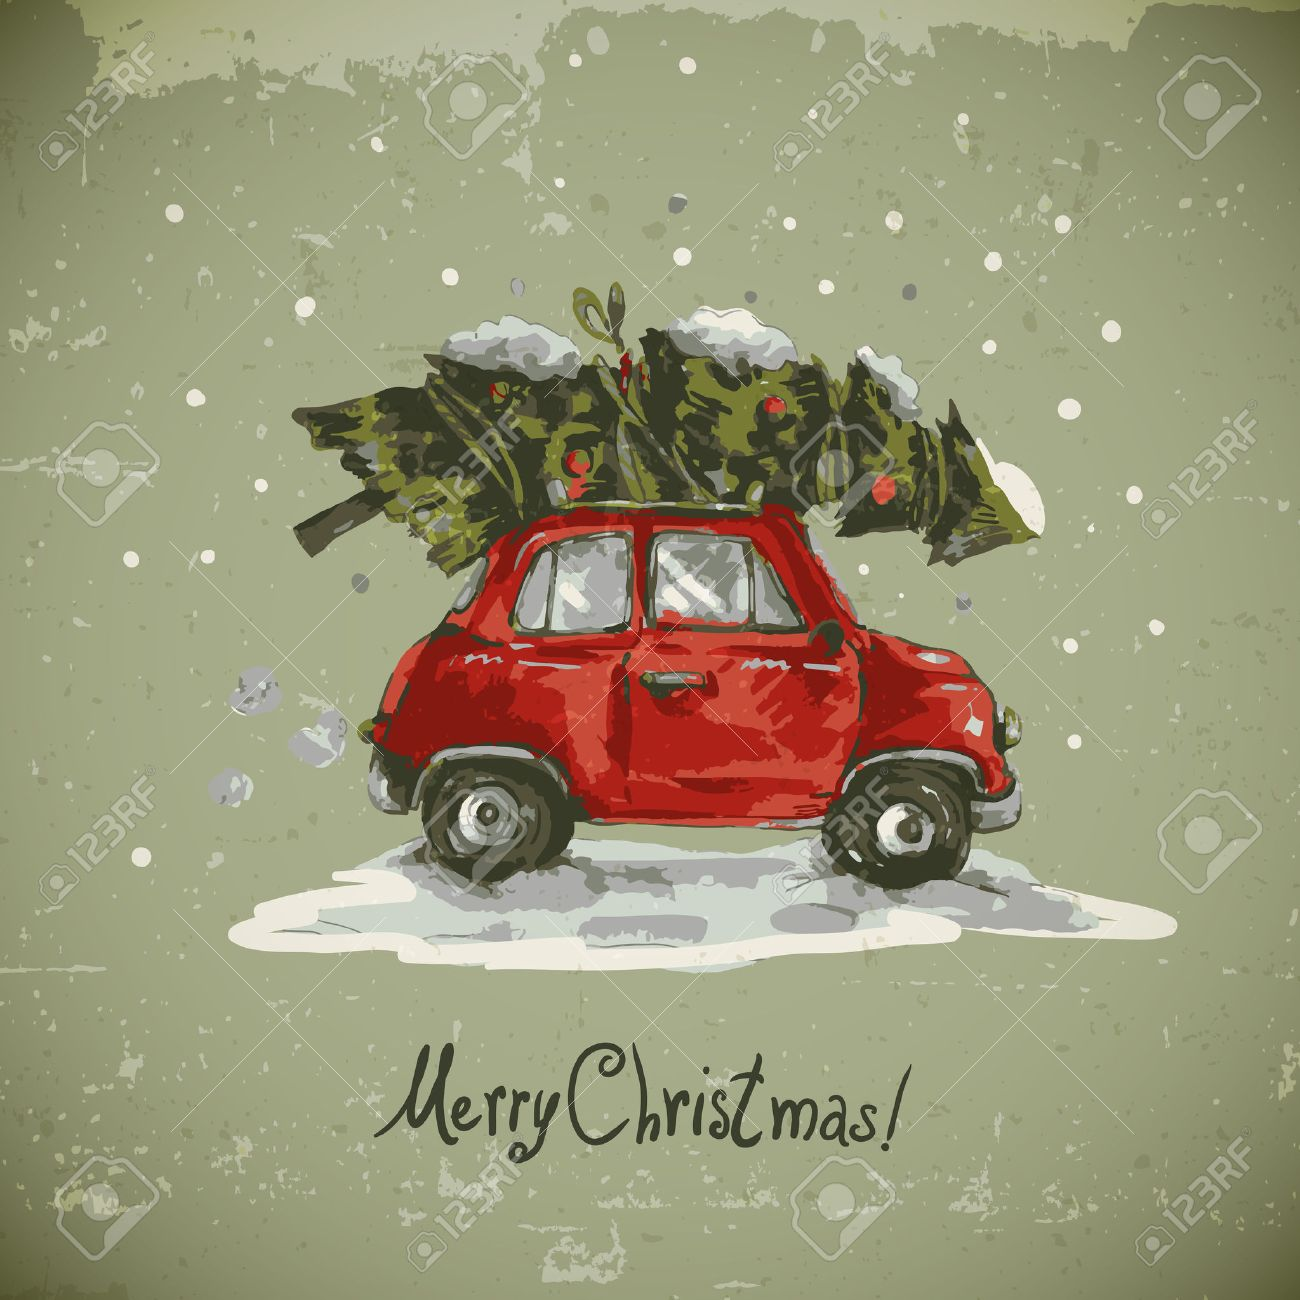 Car Christmas.Winter Greeting Card With Red Retro Car Christmas Tree Vintage